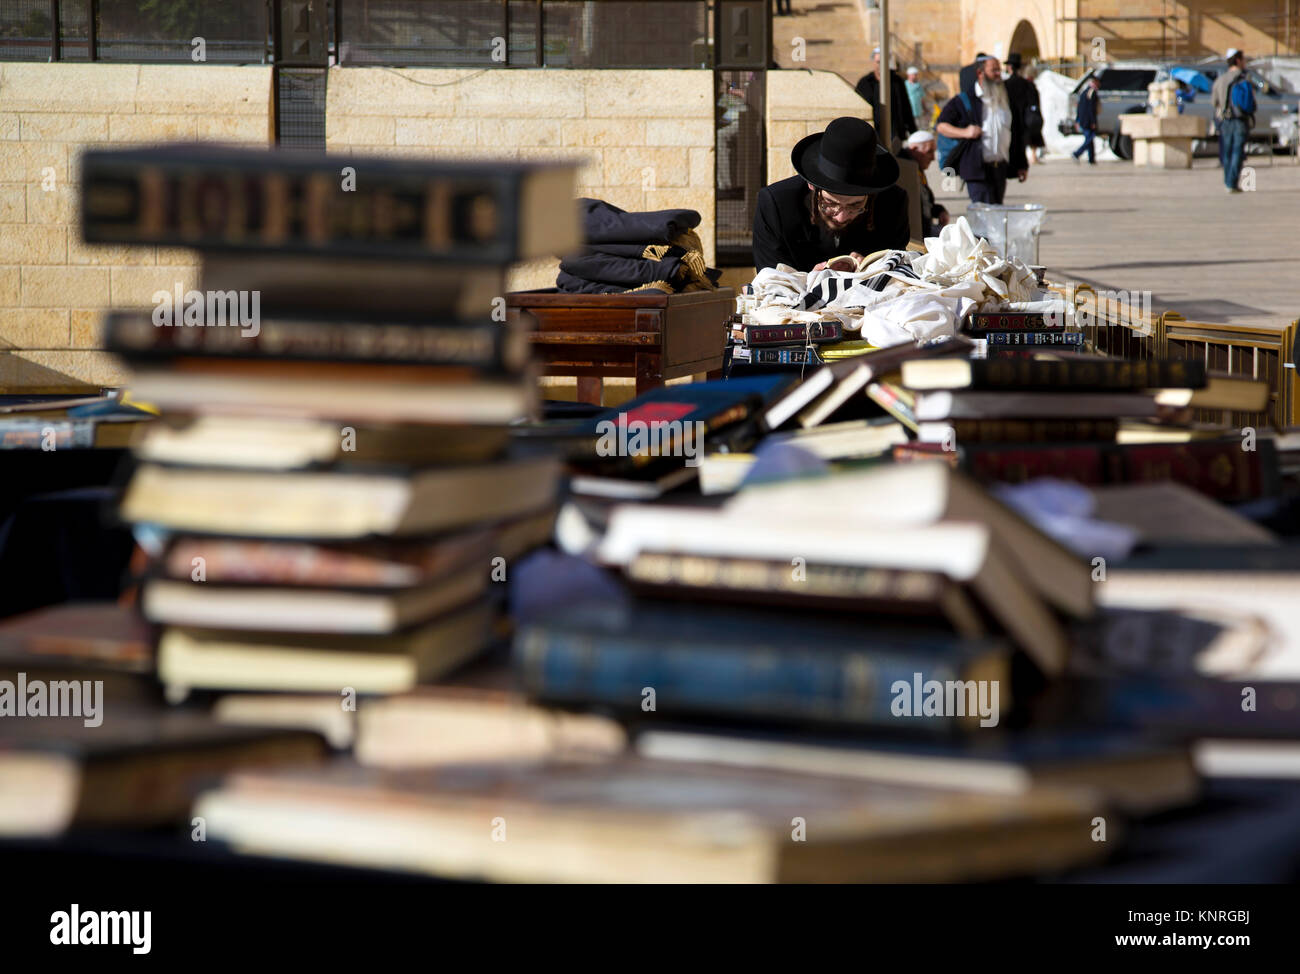 An orthodox Jew reads a torah at the Western Wall in the center of Jerusalem, Israel - Stock Image